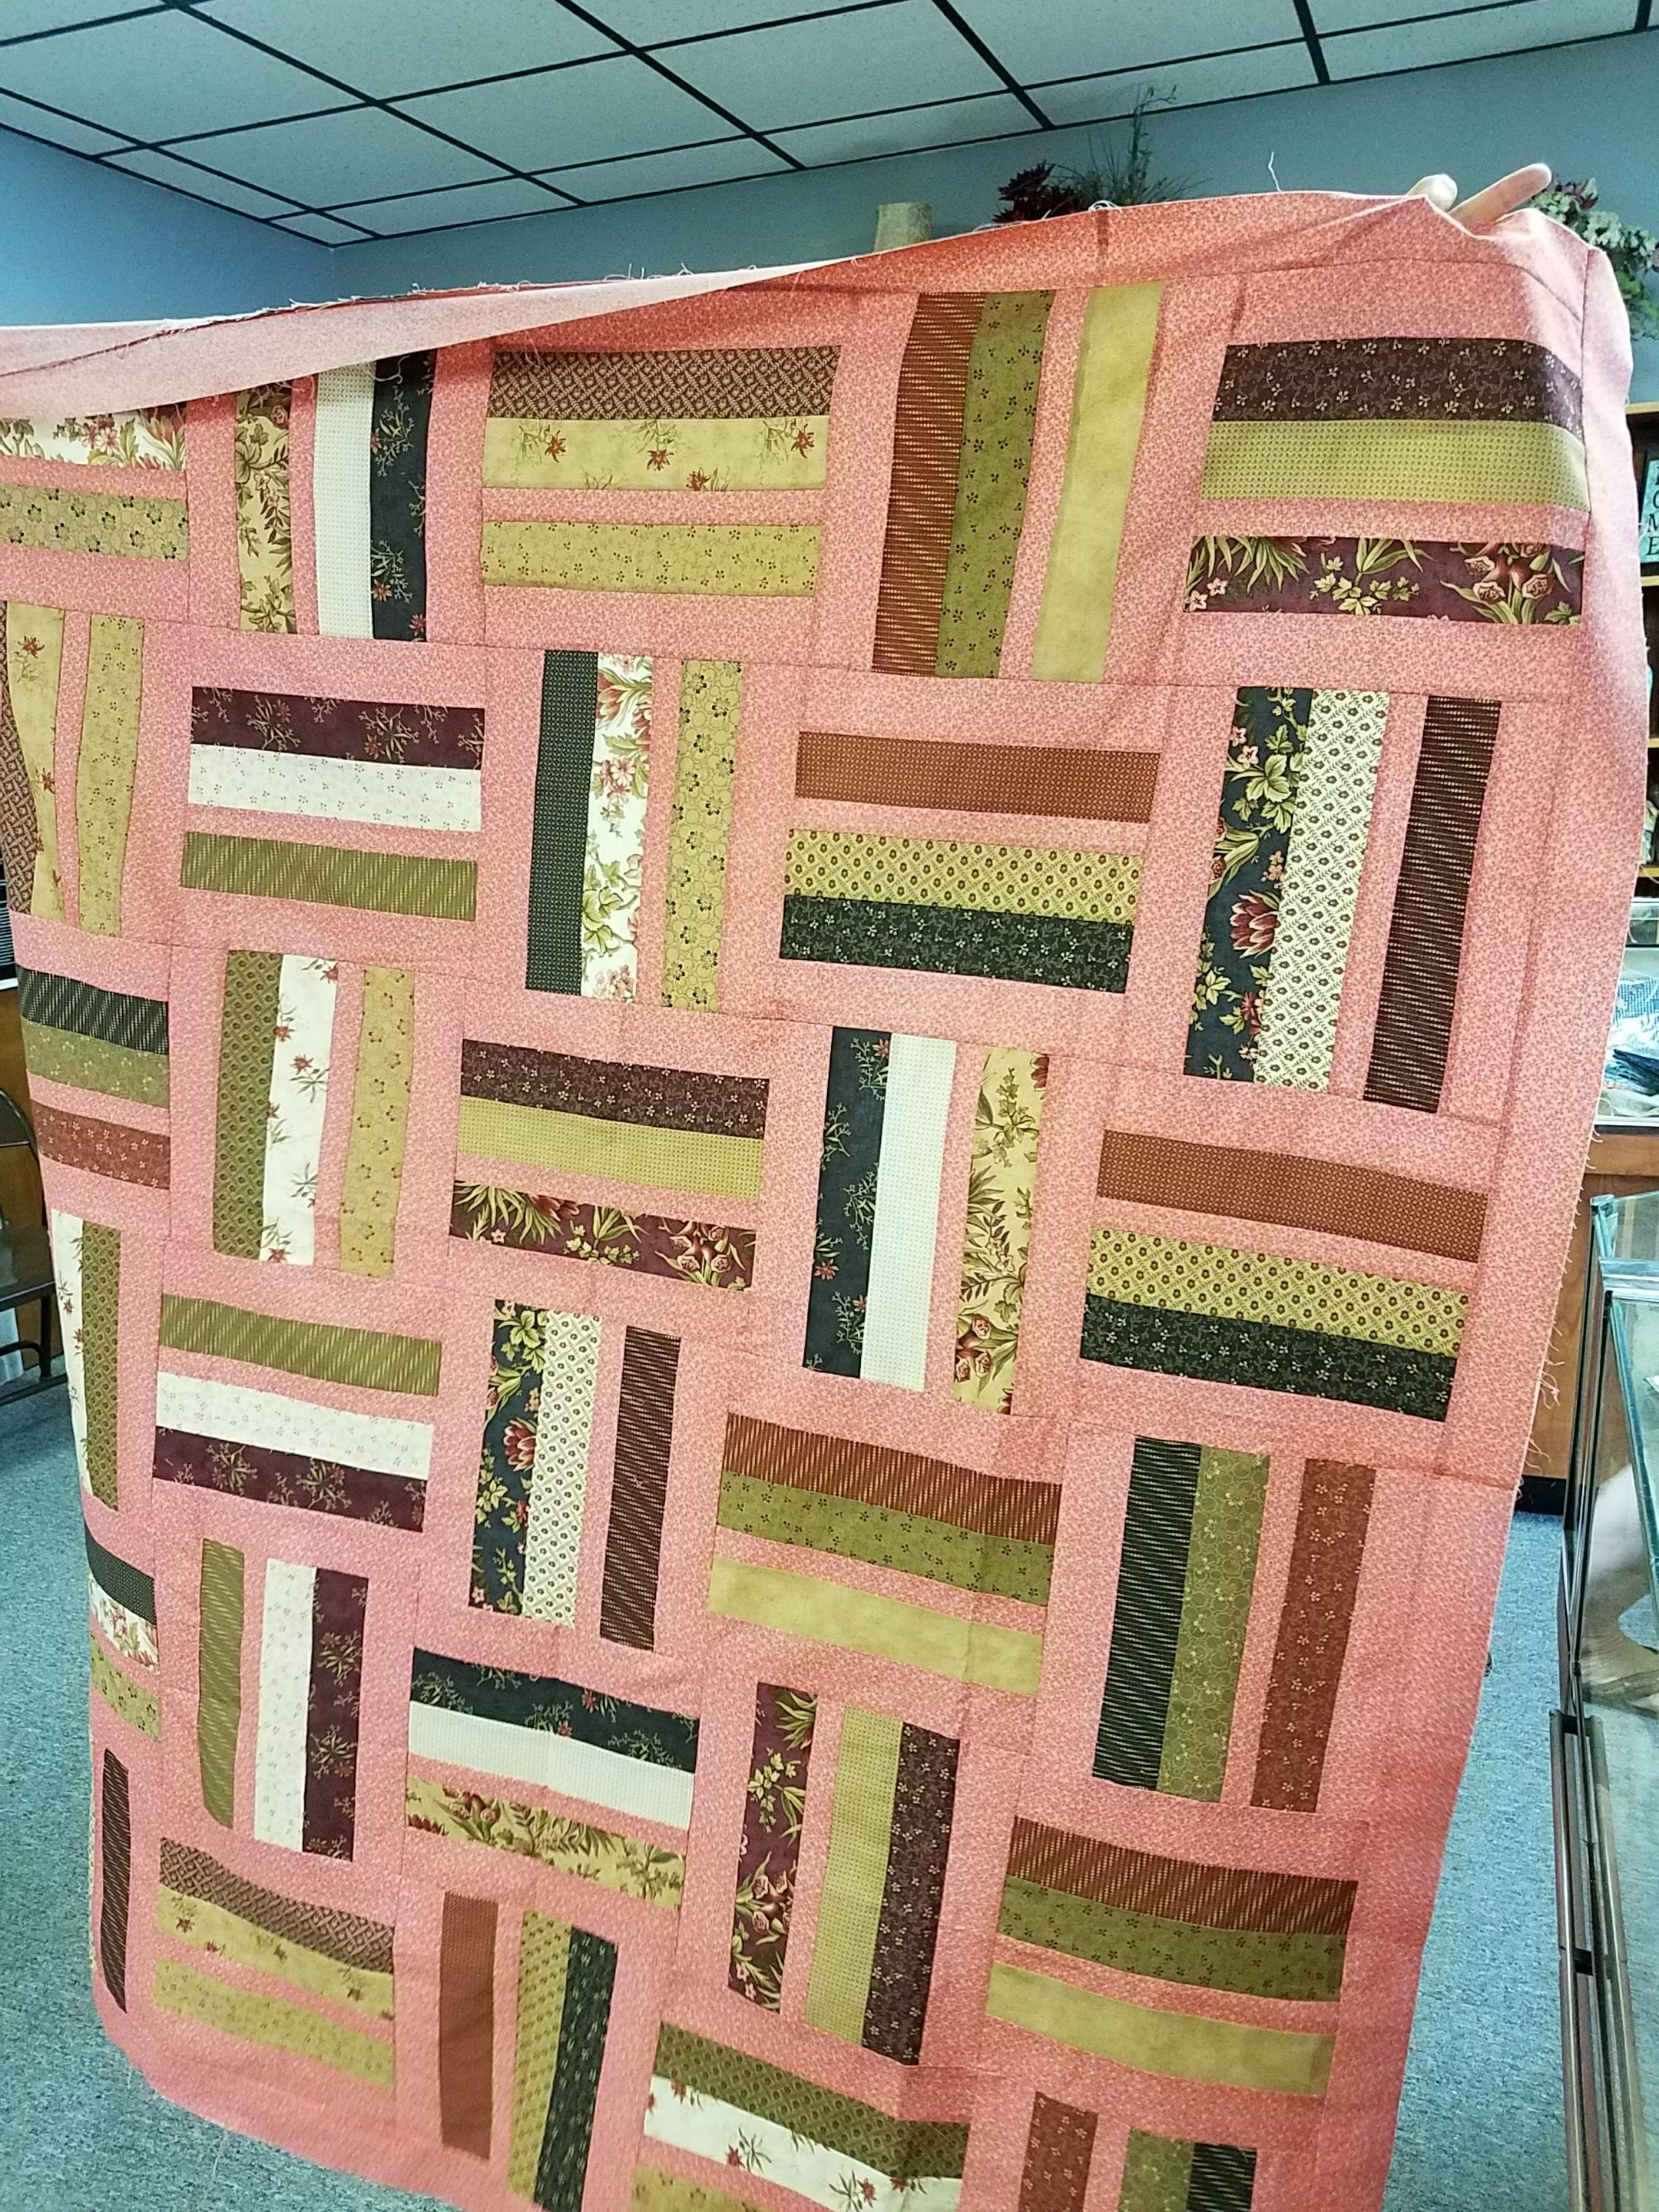 Helen used 100% QuiltedTwins.com fabrics! - I was thrilled to see someone using this color combination.Helen brought in her own pattern, but it looks very similar to Becky's Pastel Rails..